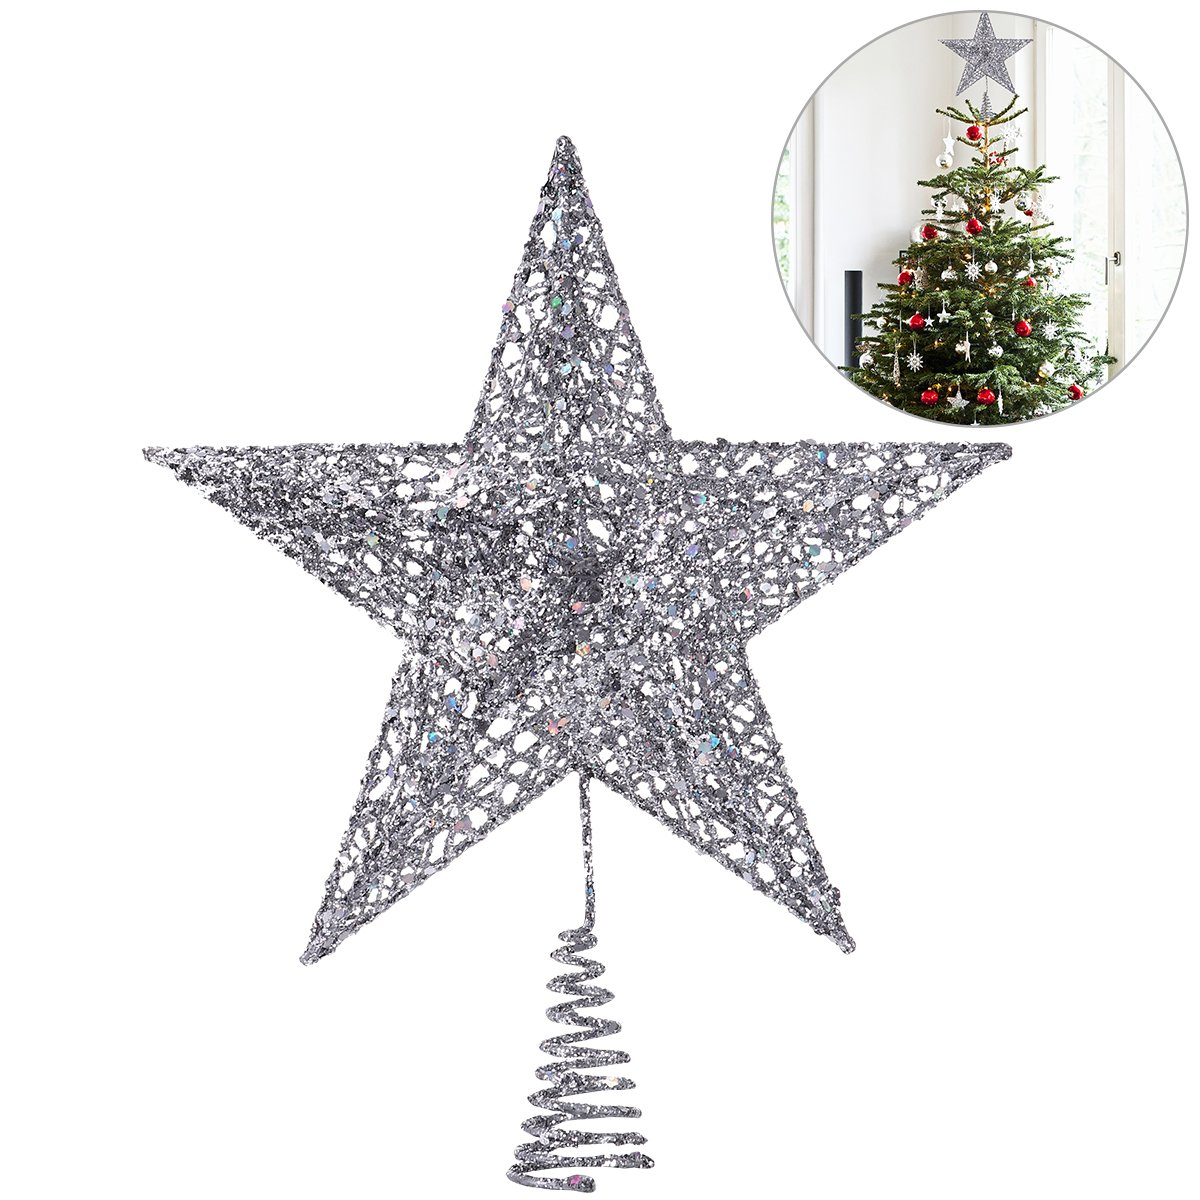 NICEXMAS Christmas Tree Topper Star Christmas Tree Decoration Exquisite Shimmery Star Treetop Decor, 25cm